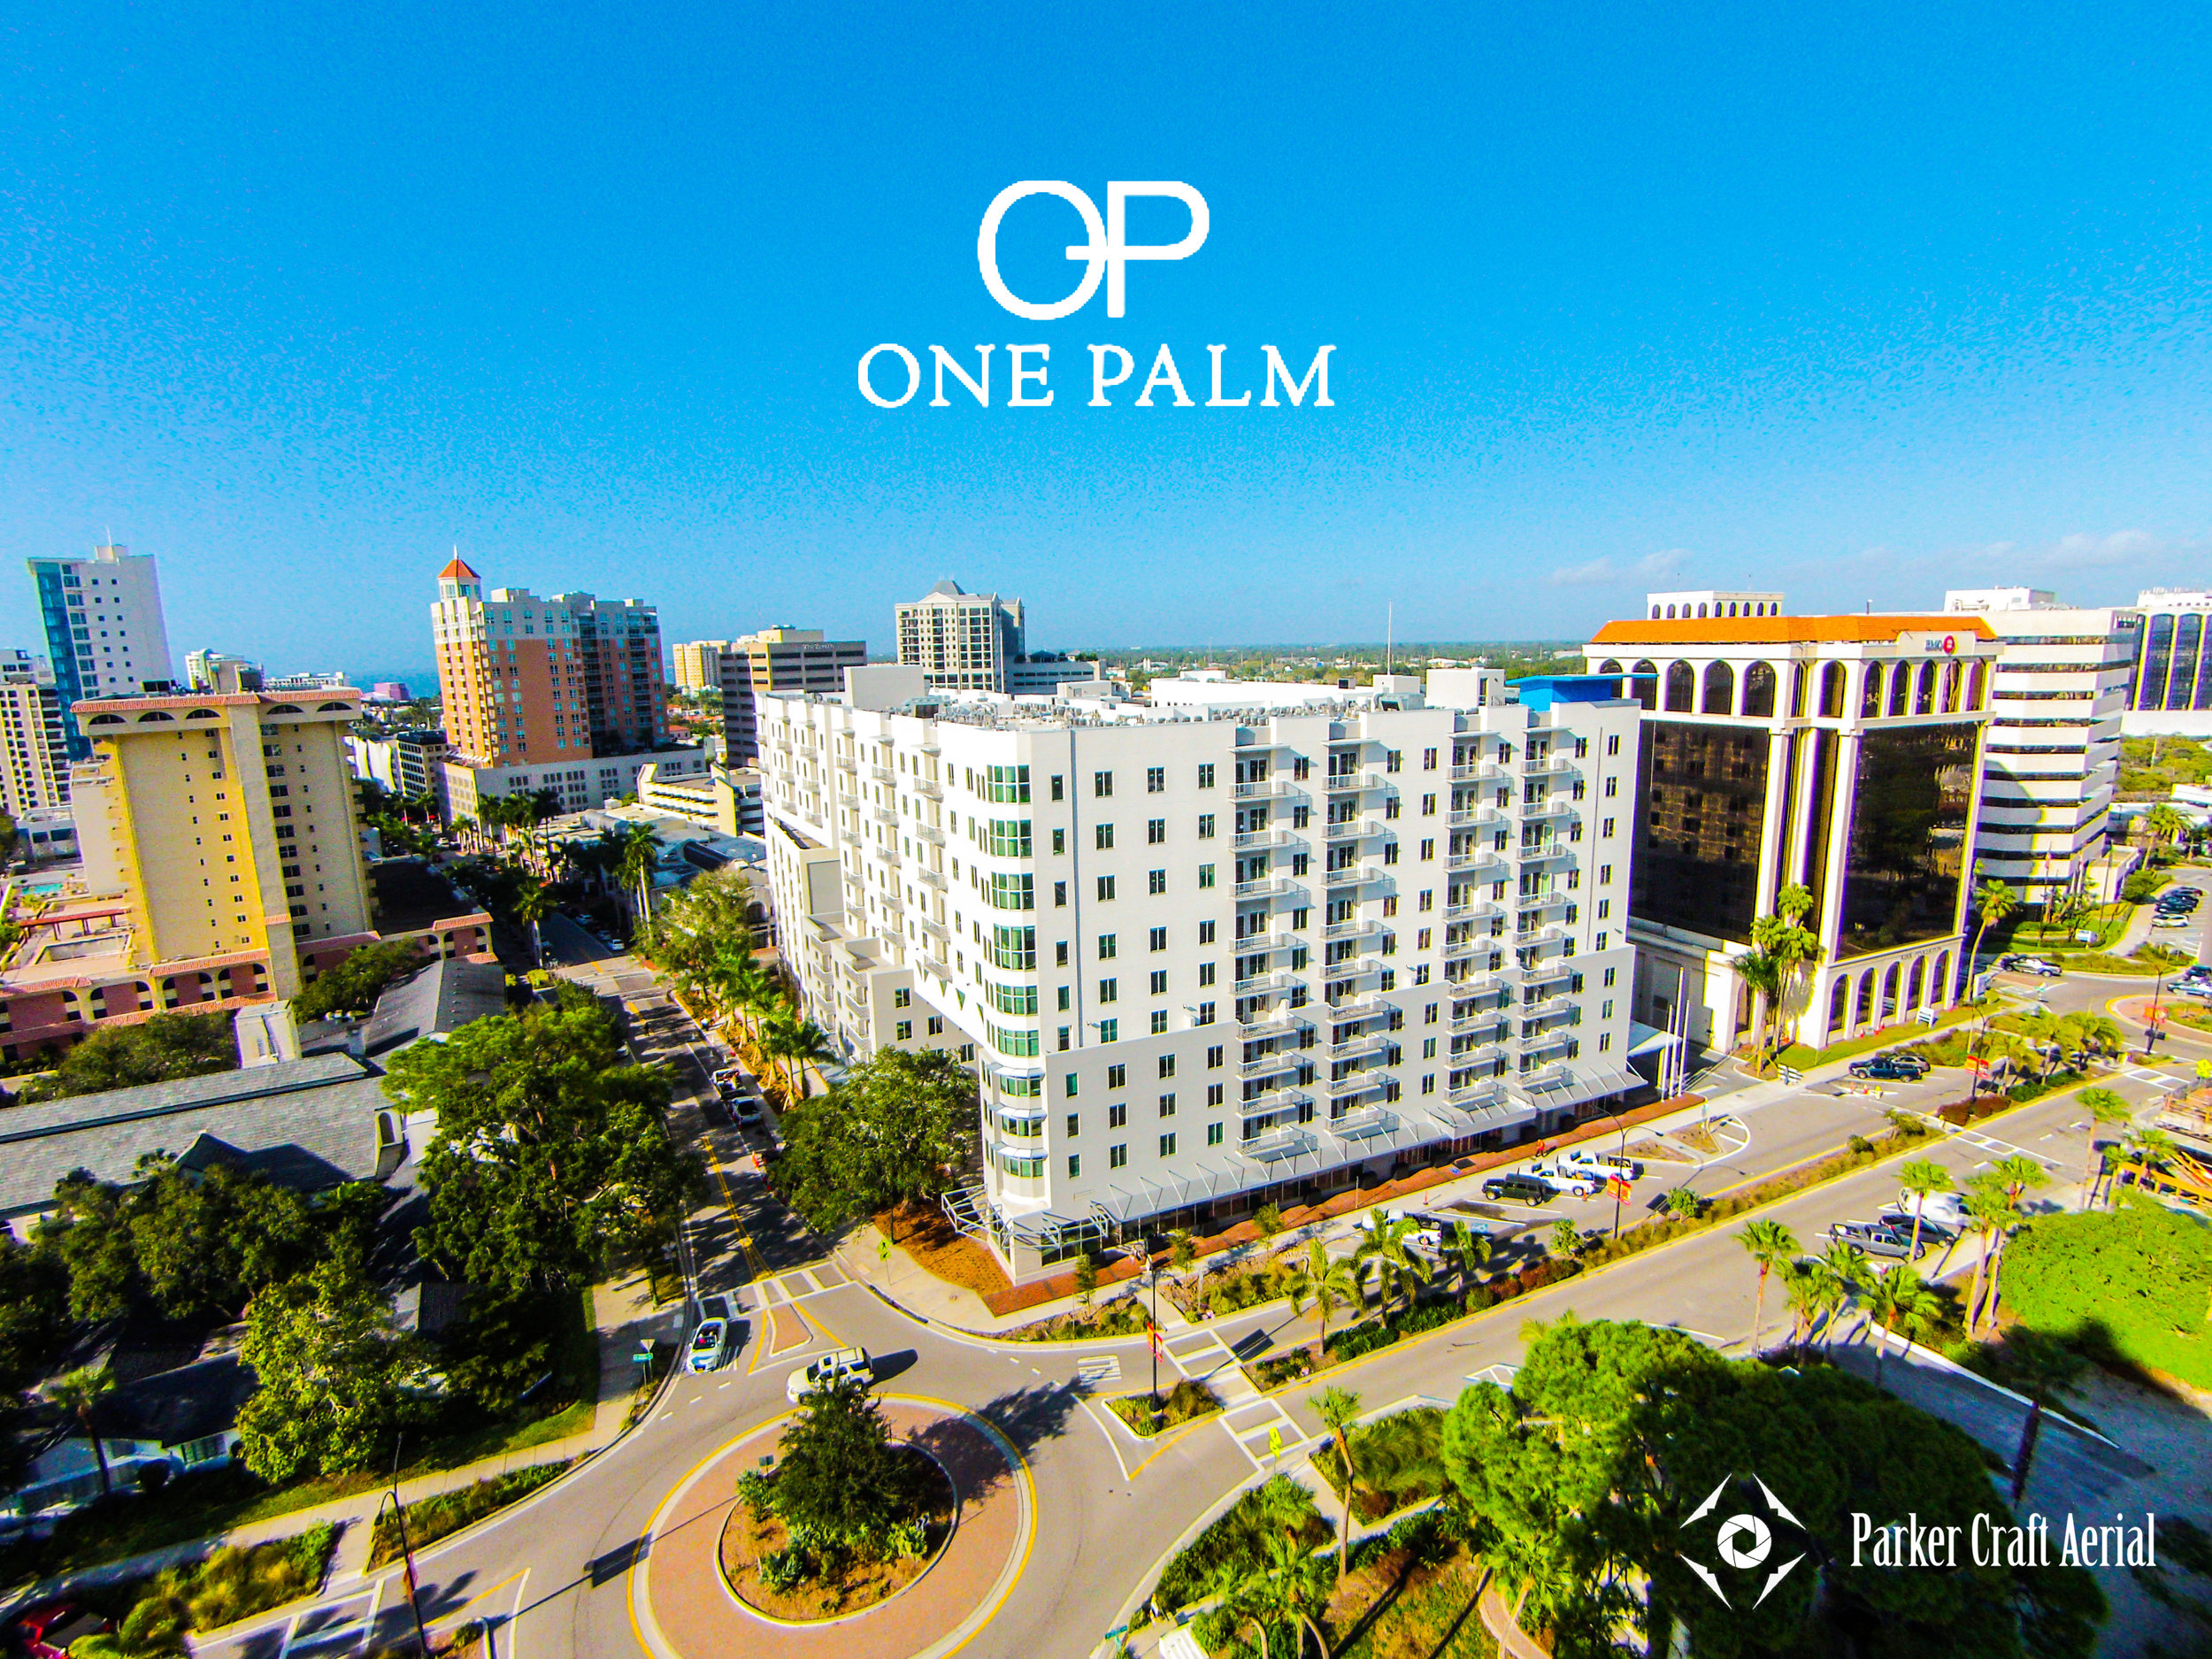 One Palm Aerial